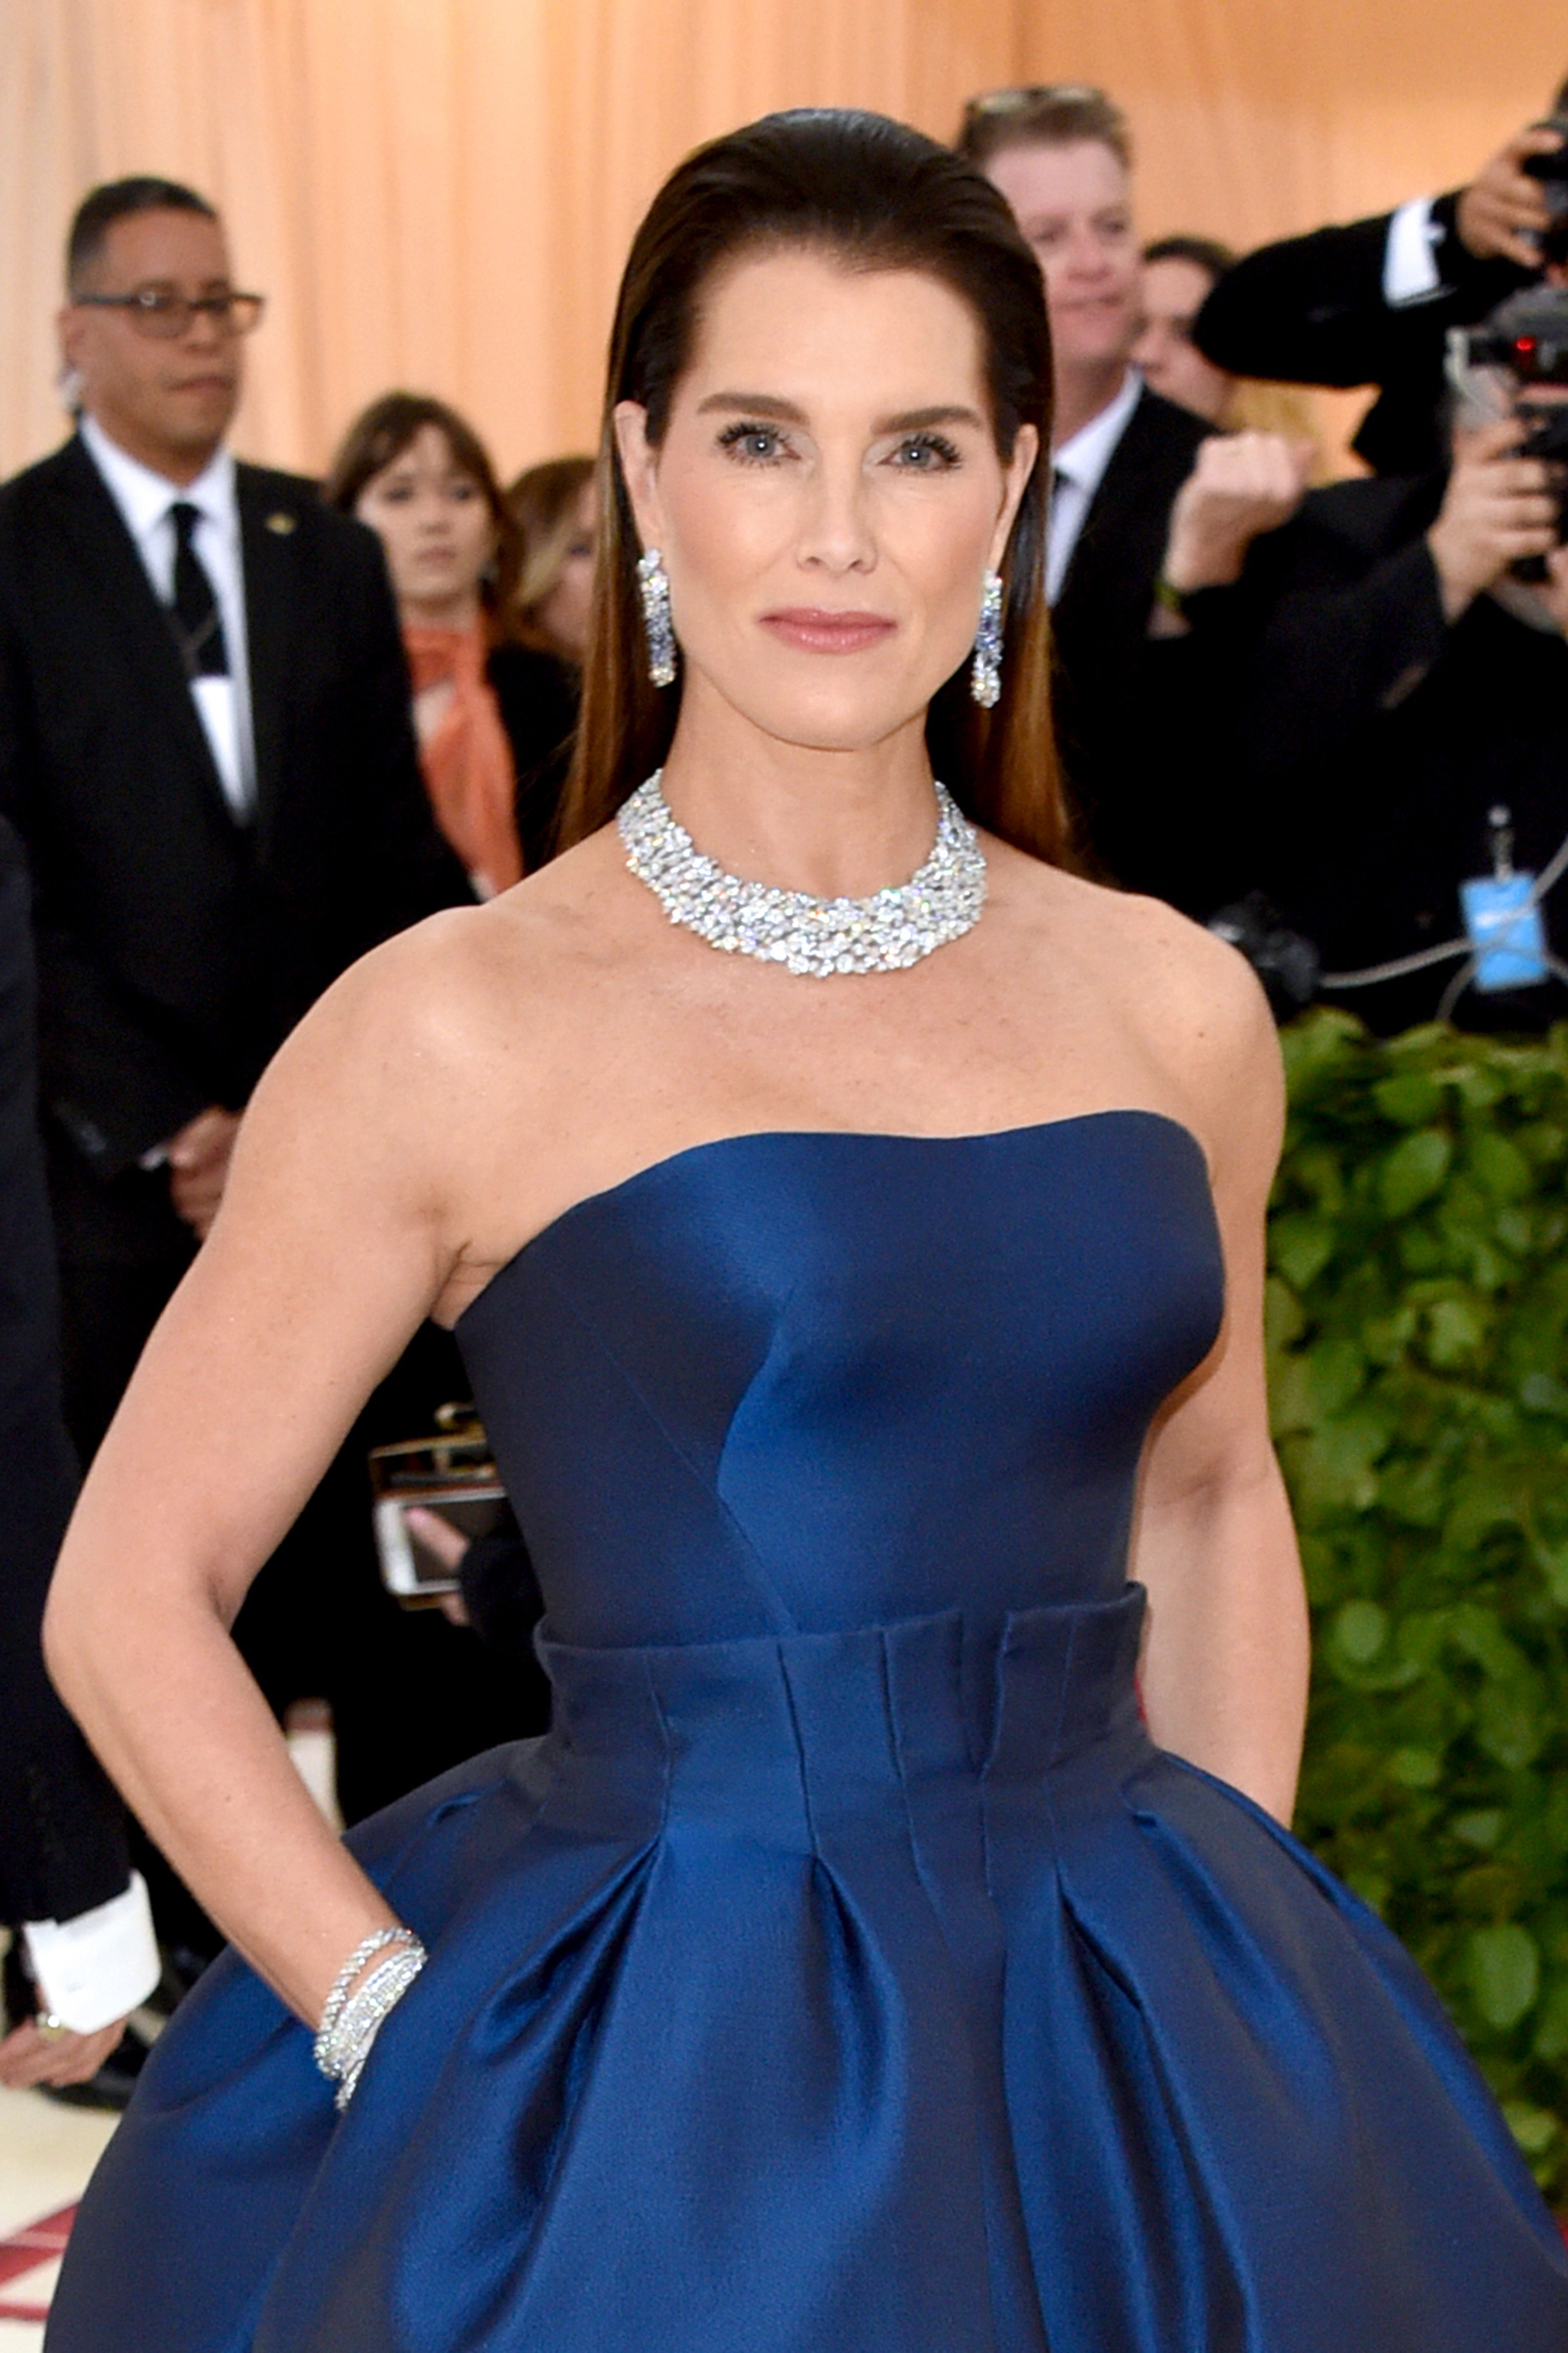 """Brooke Shields In Ladies Home Journal Magazine , Brooke Shields says that she tried botox, but is cautious about doing it again. """"I want laser treatment because I'm not a fan of my wrinkles. But I have to find someone with a light touch. I'm scared I'll end up looking like the Joker."""""""